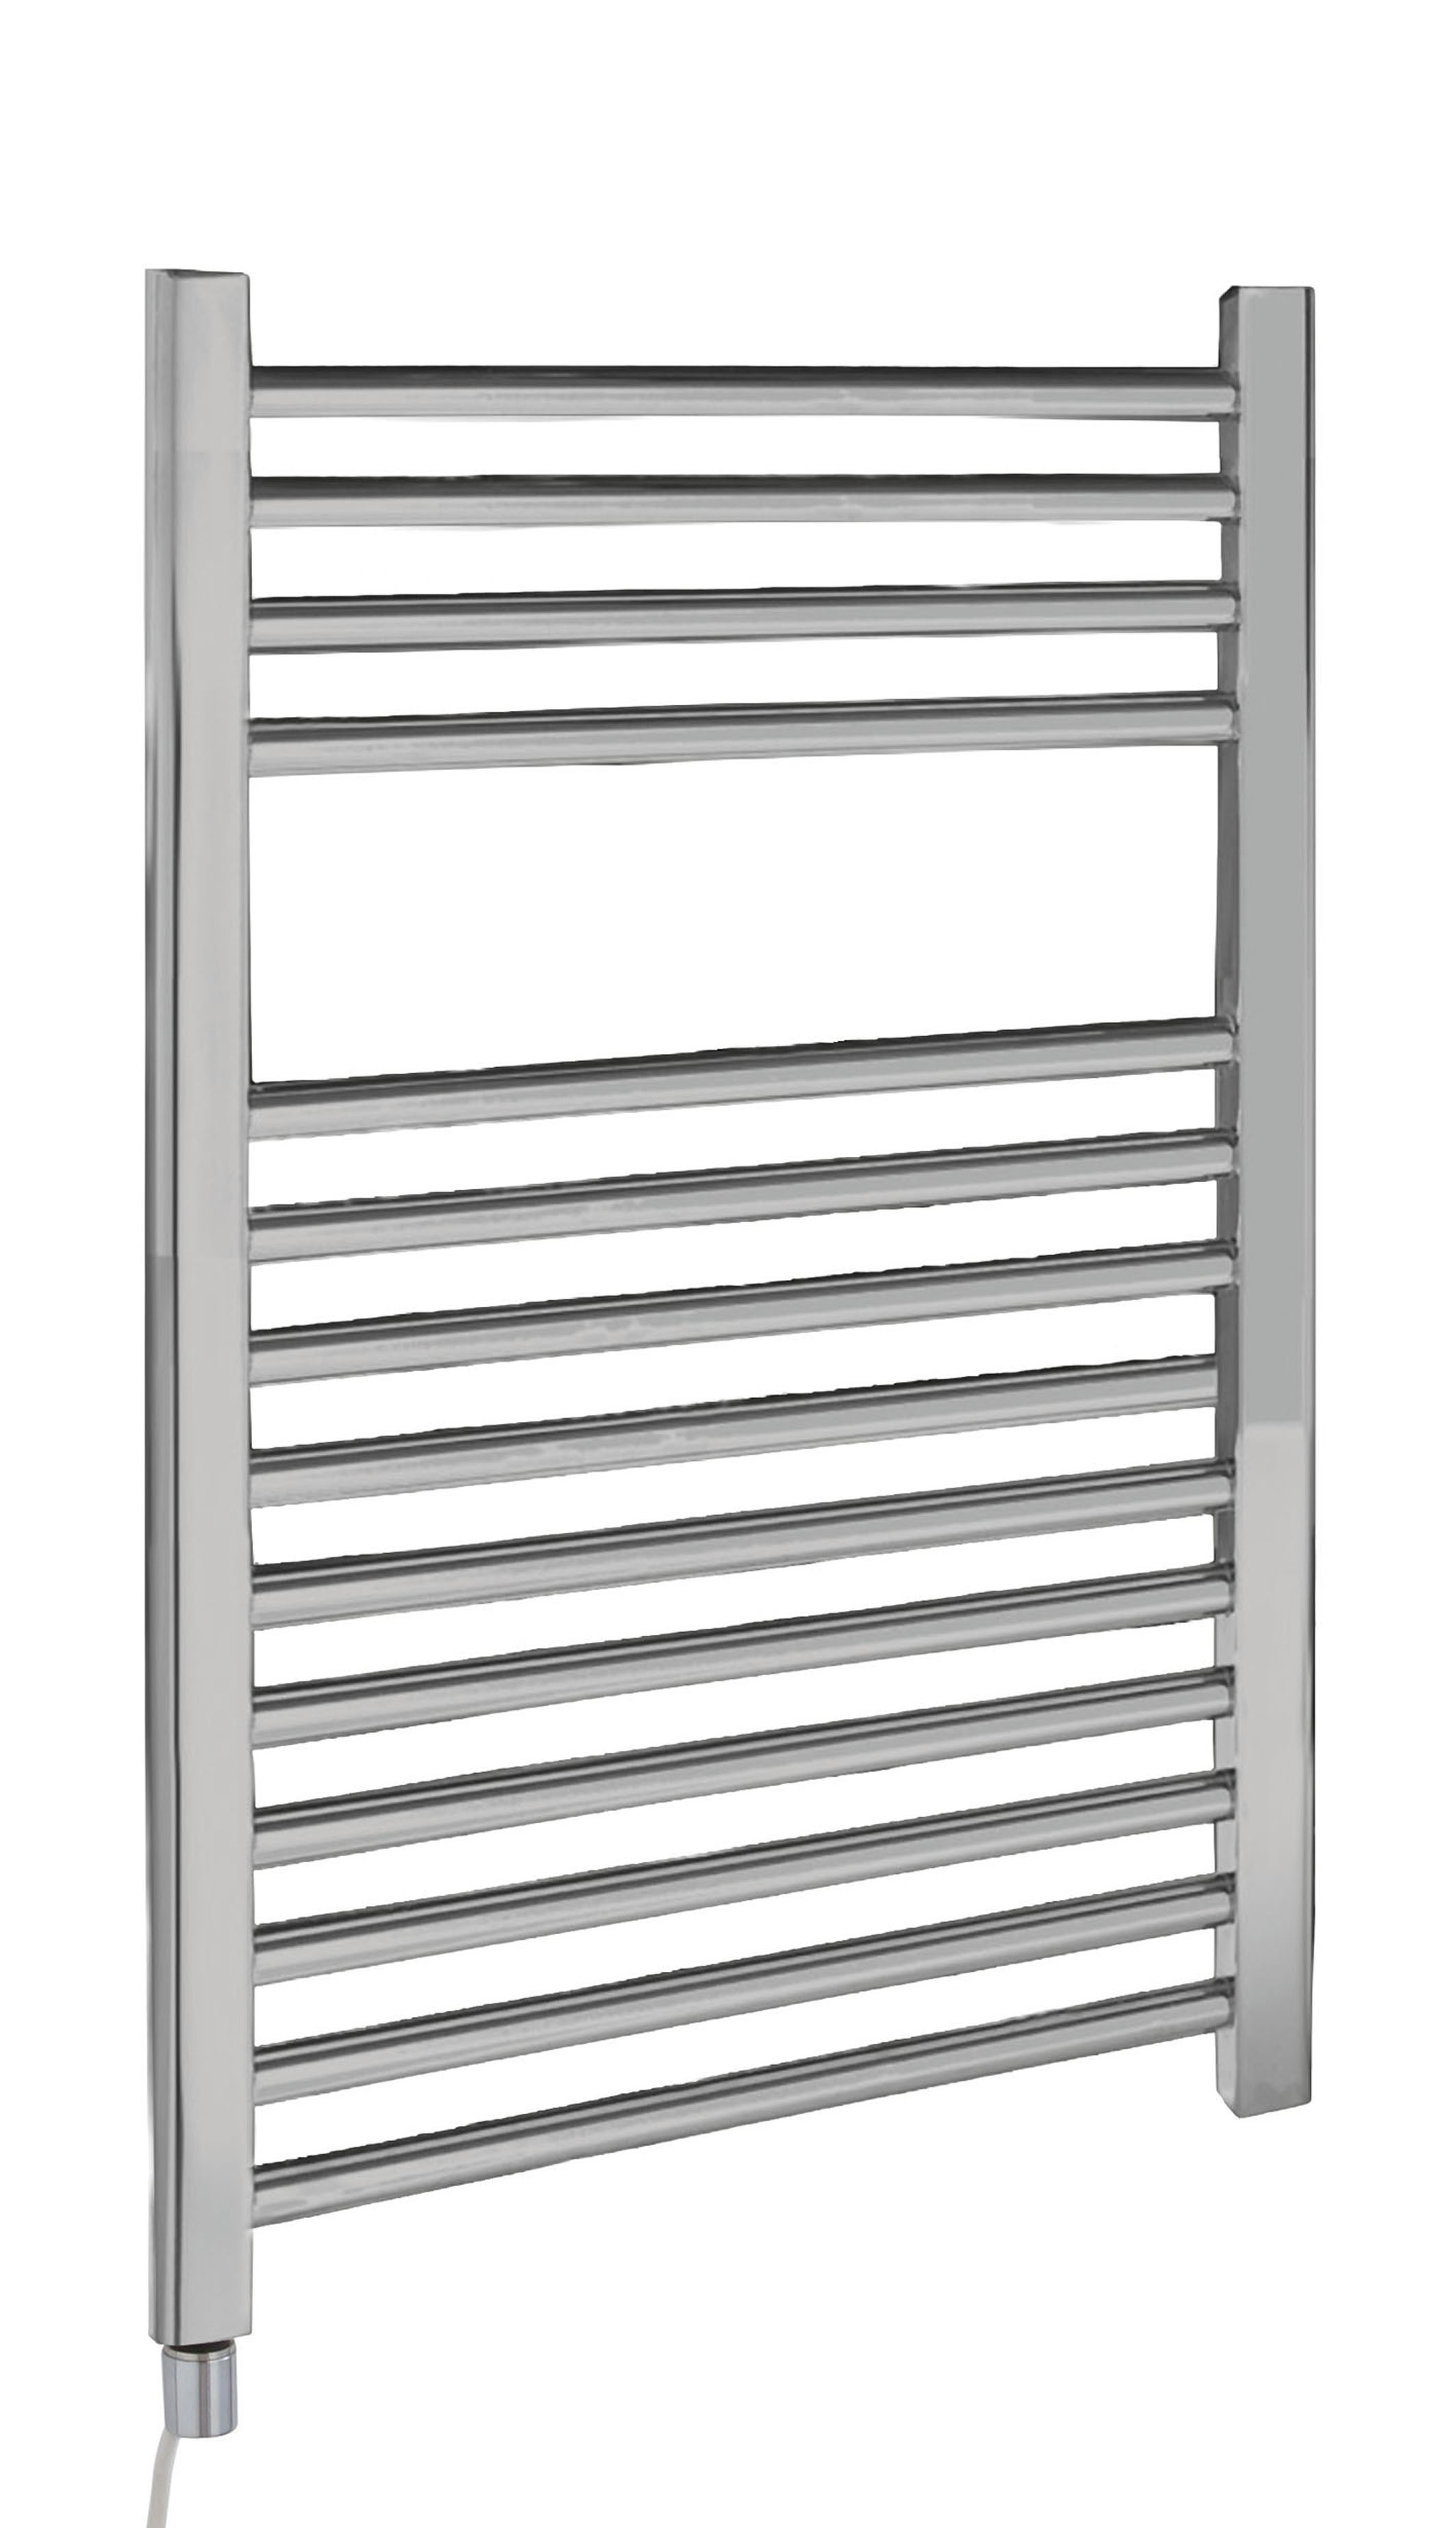 C/P Electric Only Heated Towel Rail 500x700